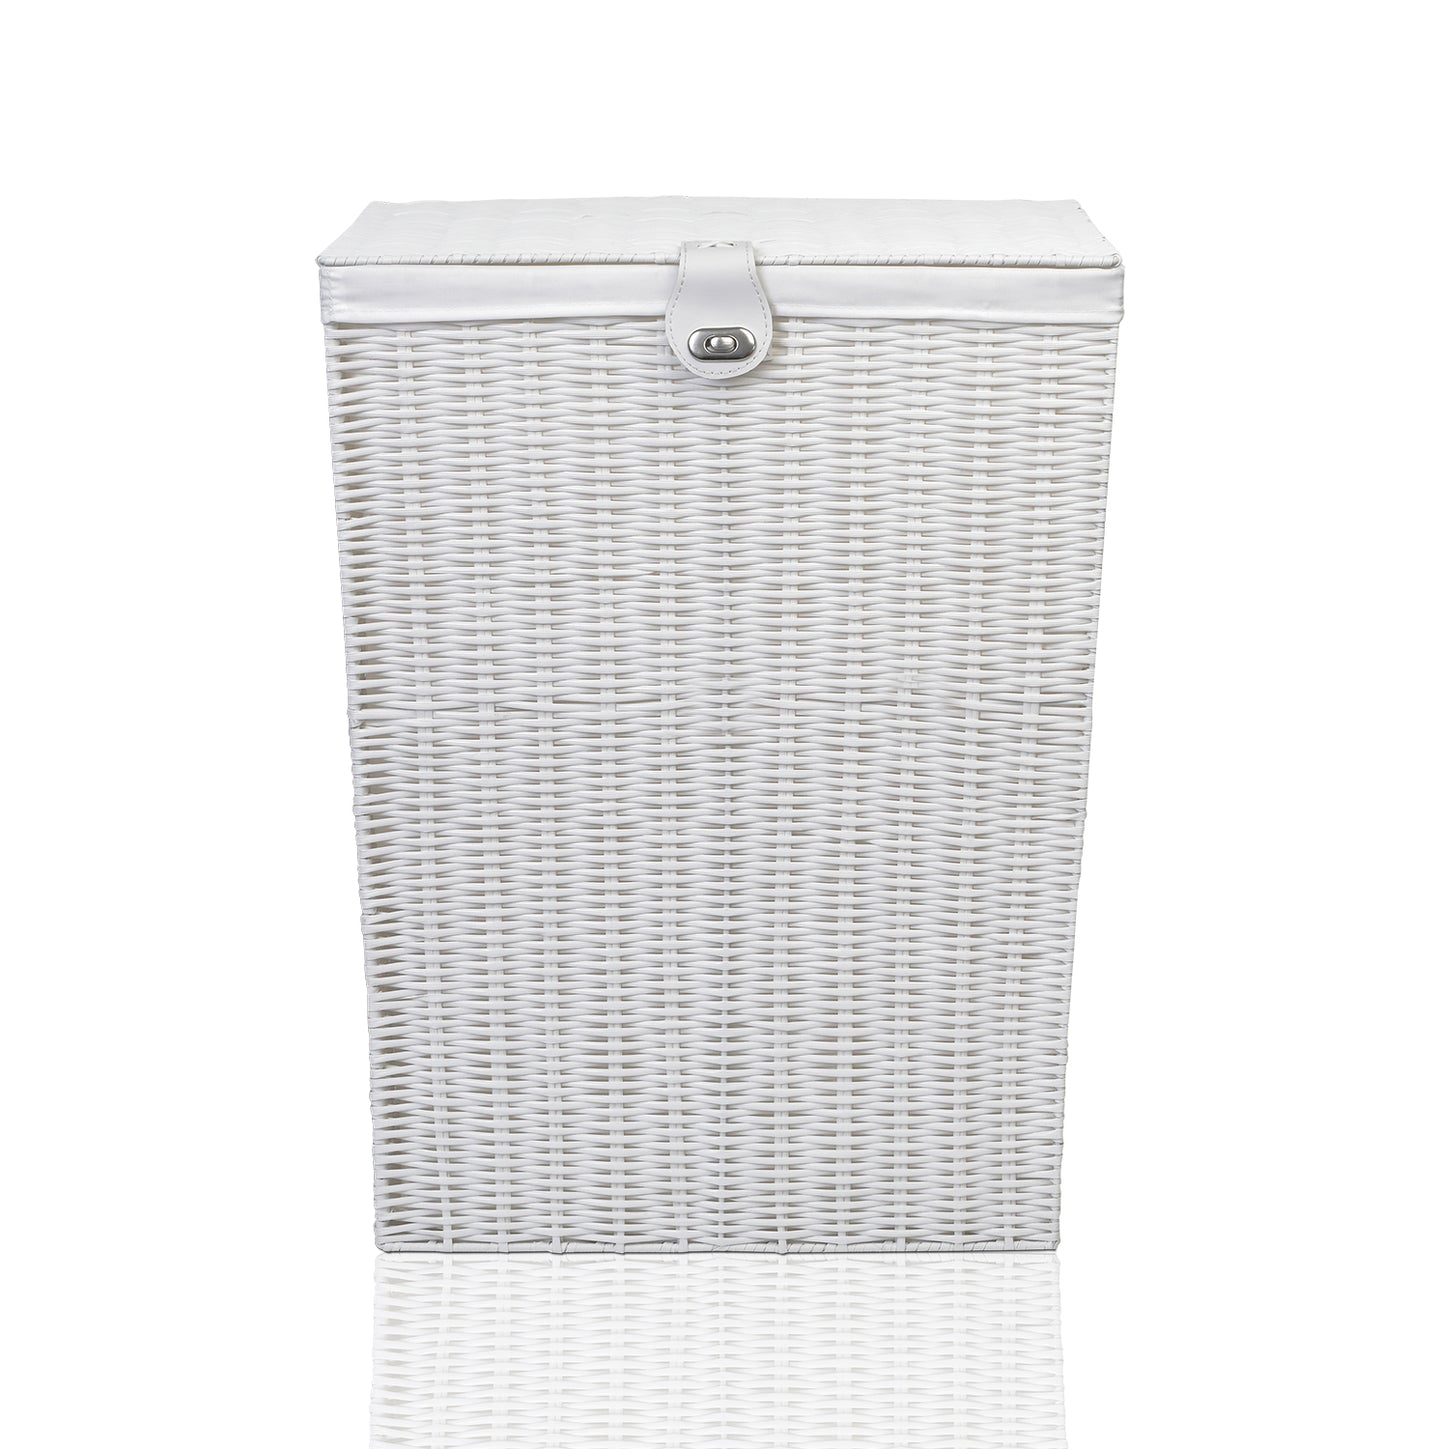 Arpan Resin Large Laundry Clothes Basket with Lid, Lock and Lining Storage Basket with Removable Lining 85 liters - White